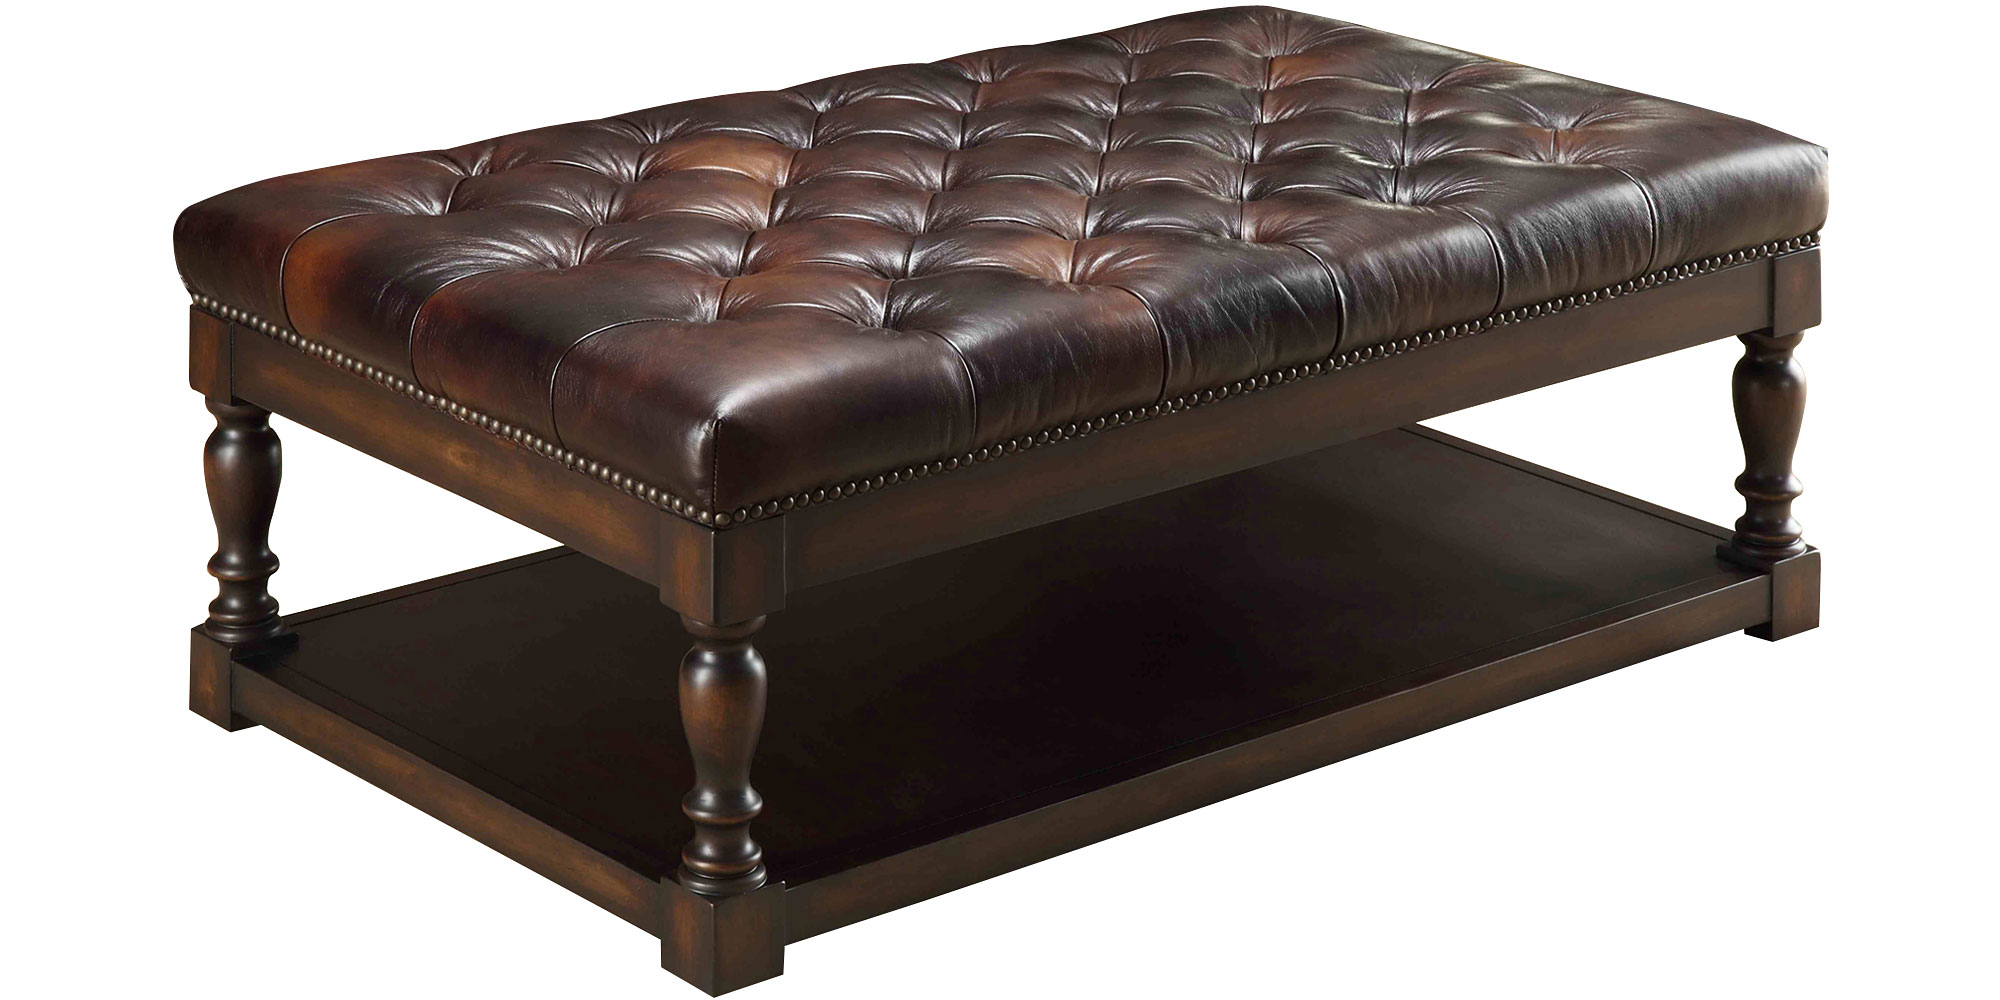 10 Best Collection of Round Leather Storage Ottoman Coffee Table